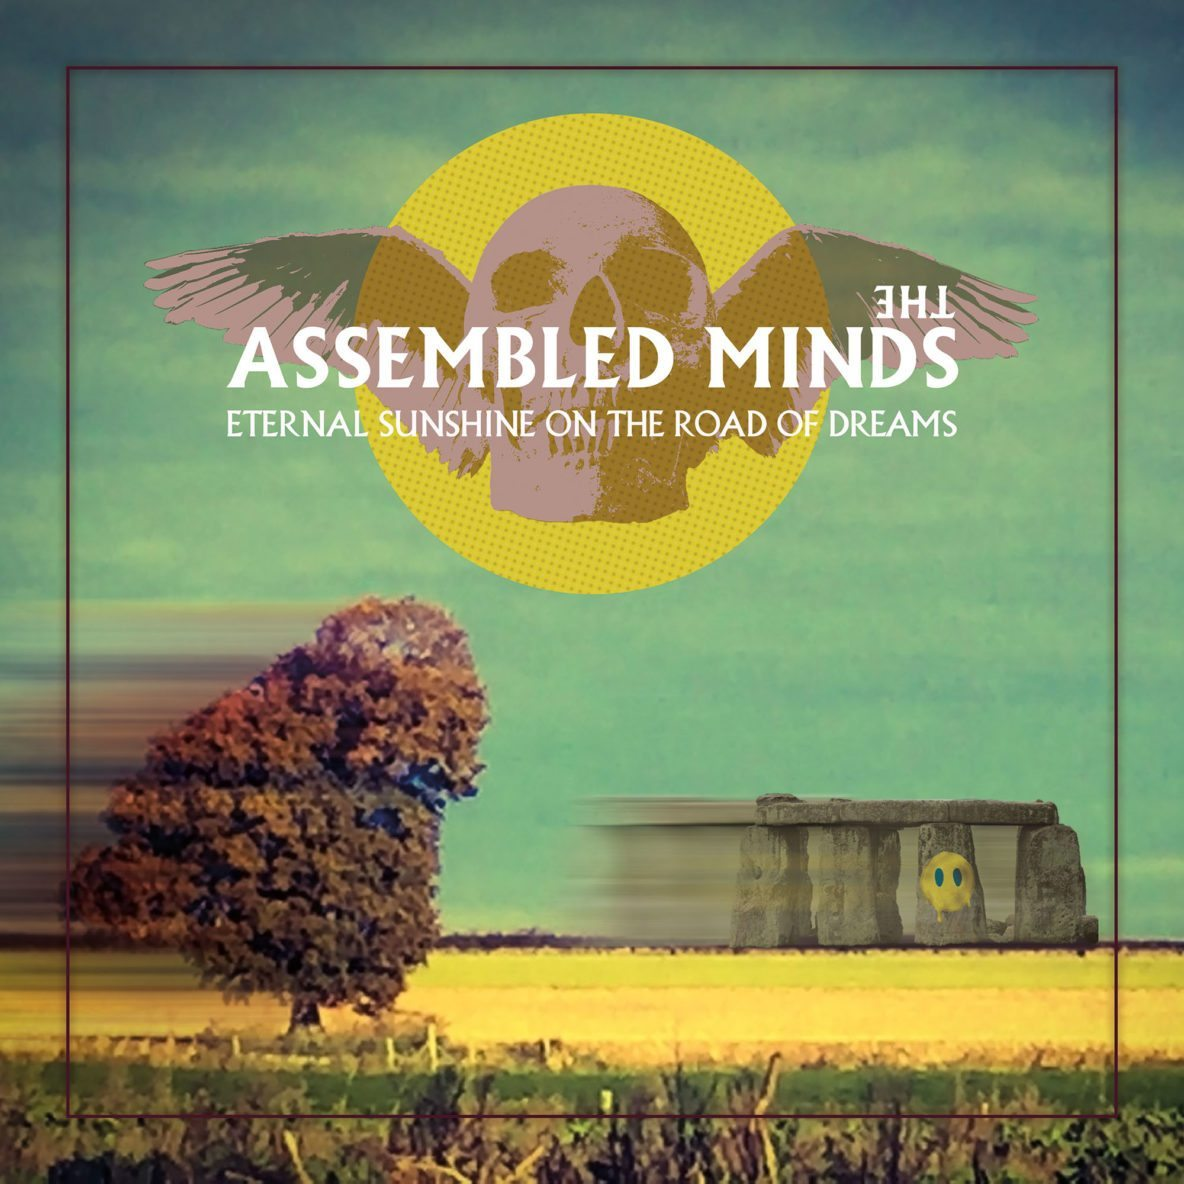 Assembled Minds - Eternal Sunshine on the Road of Dreams